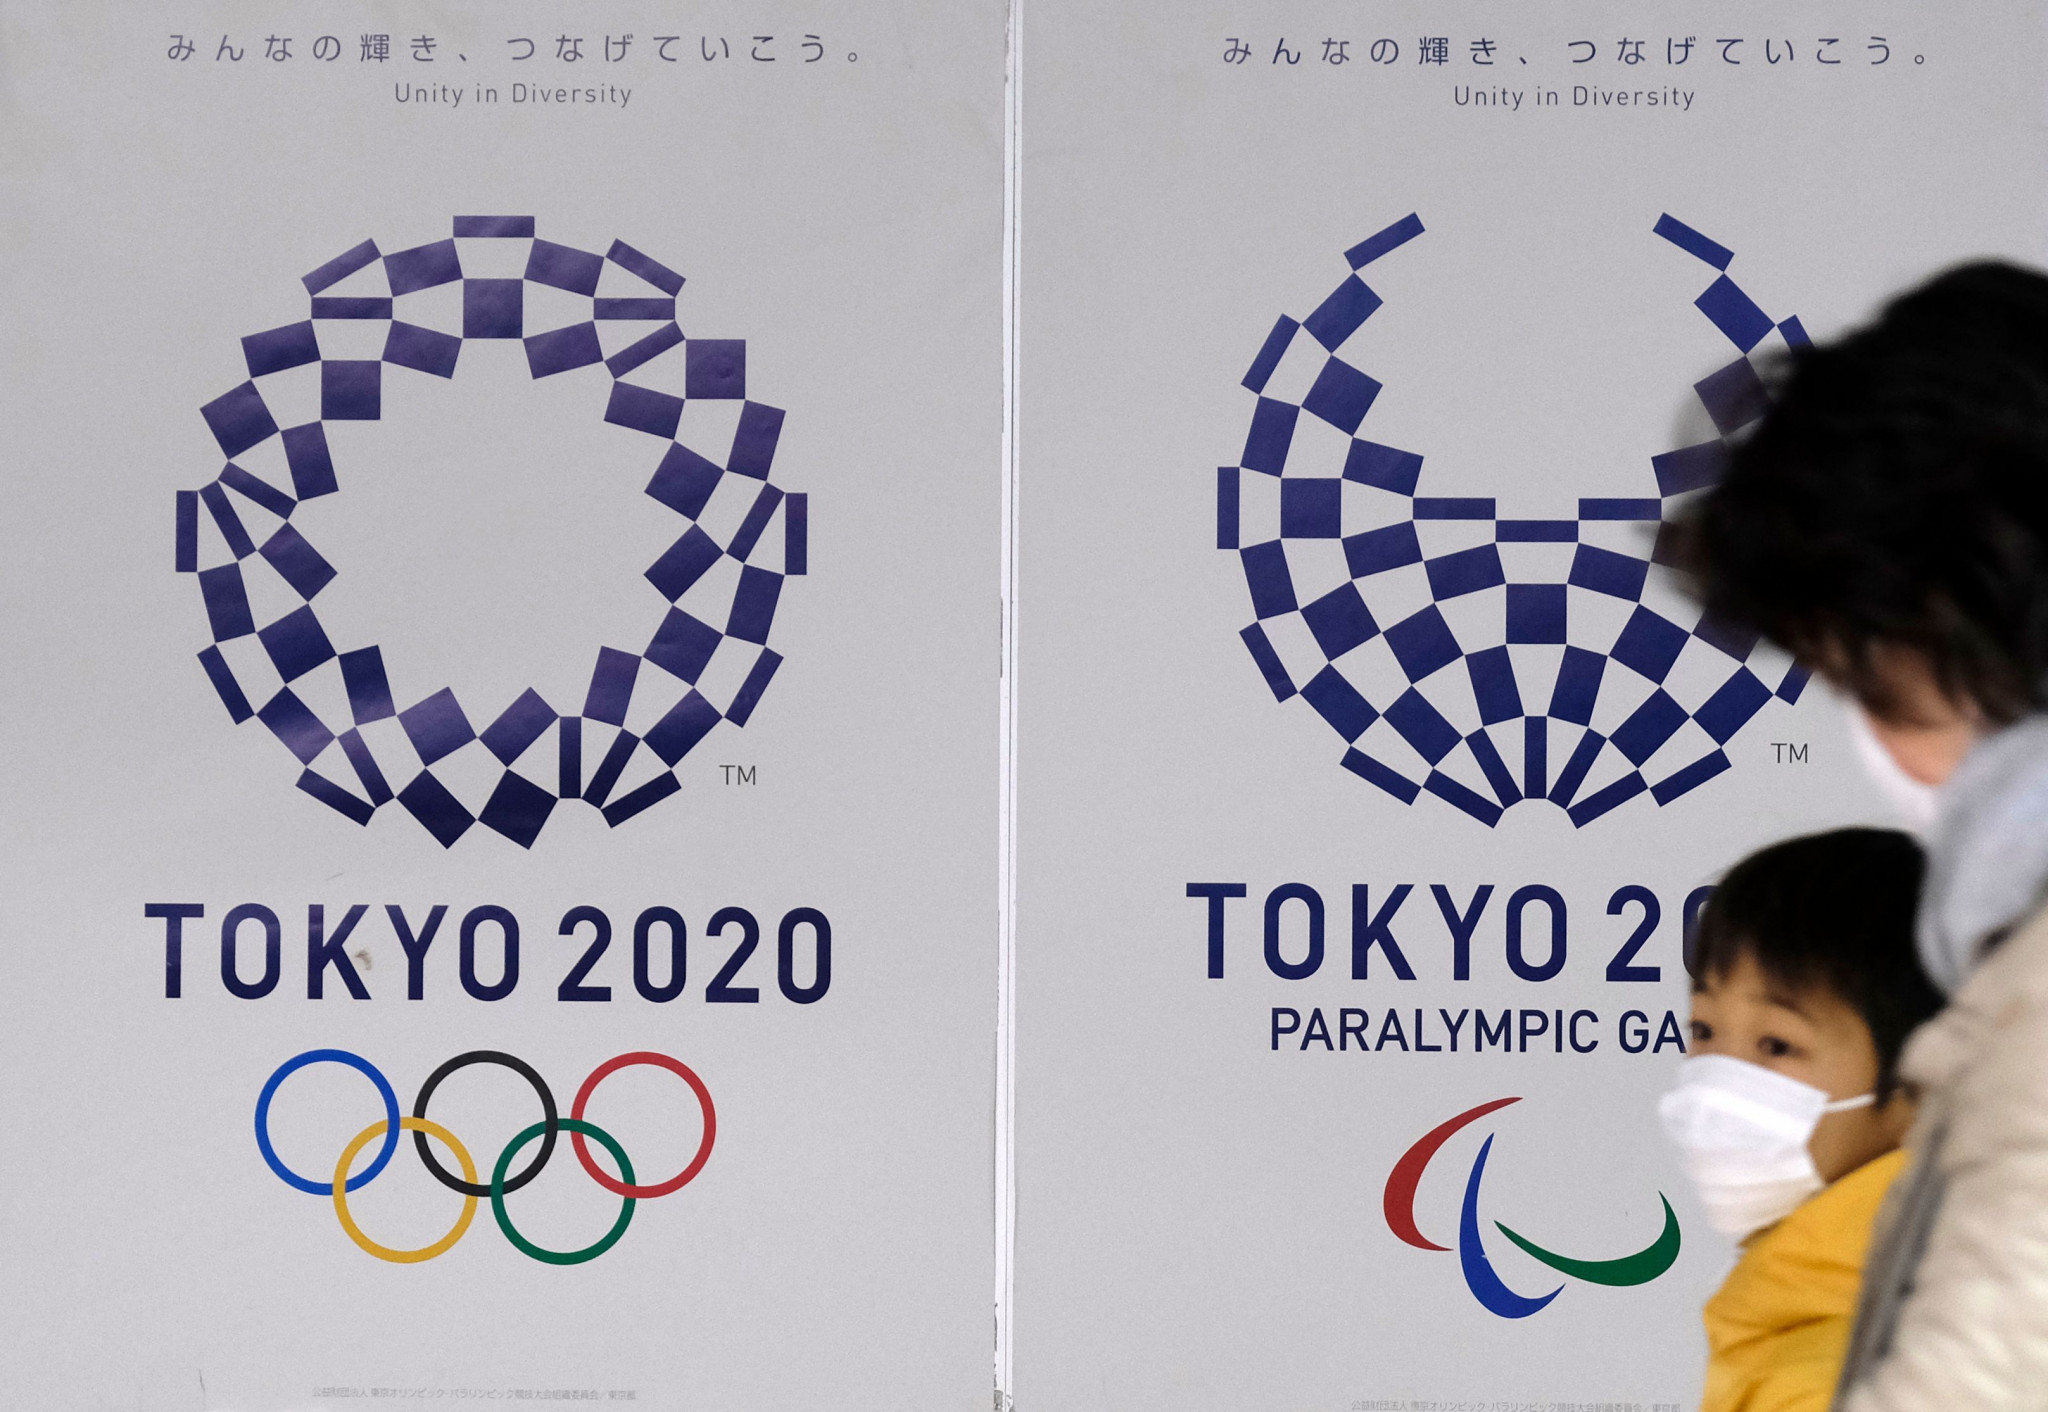 IPC working with federations to adjust Tokyo 2020 qualification and offer classification opportunities